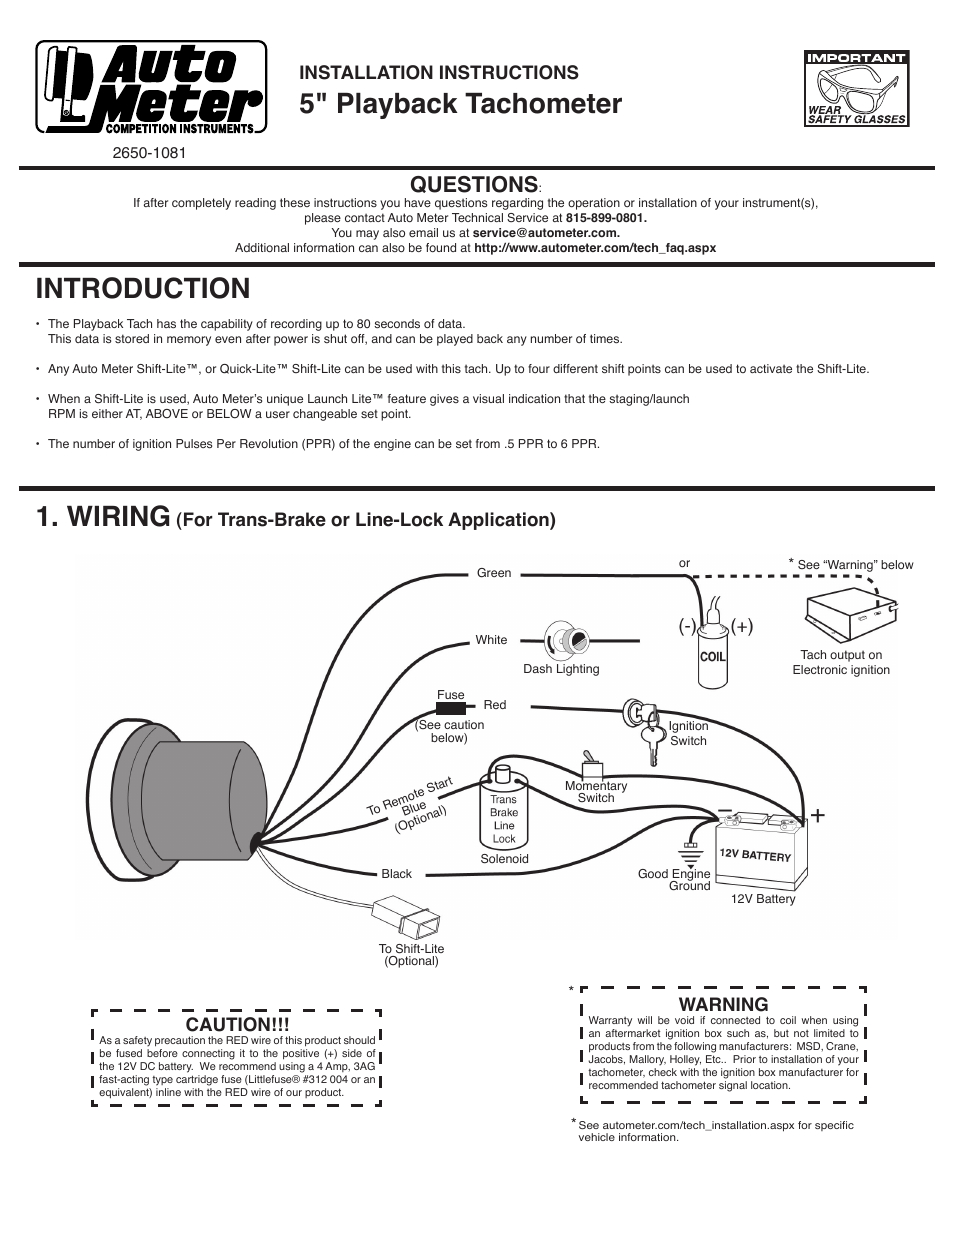 Surprising Autometer Tach Wiring Diagram Wirings Diagram Wiring 101 Capemaxxcnl